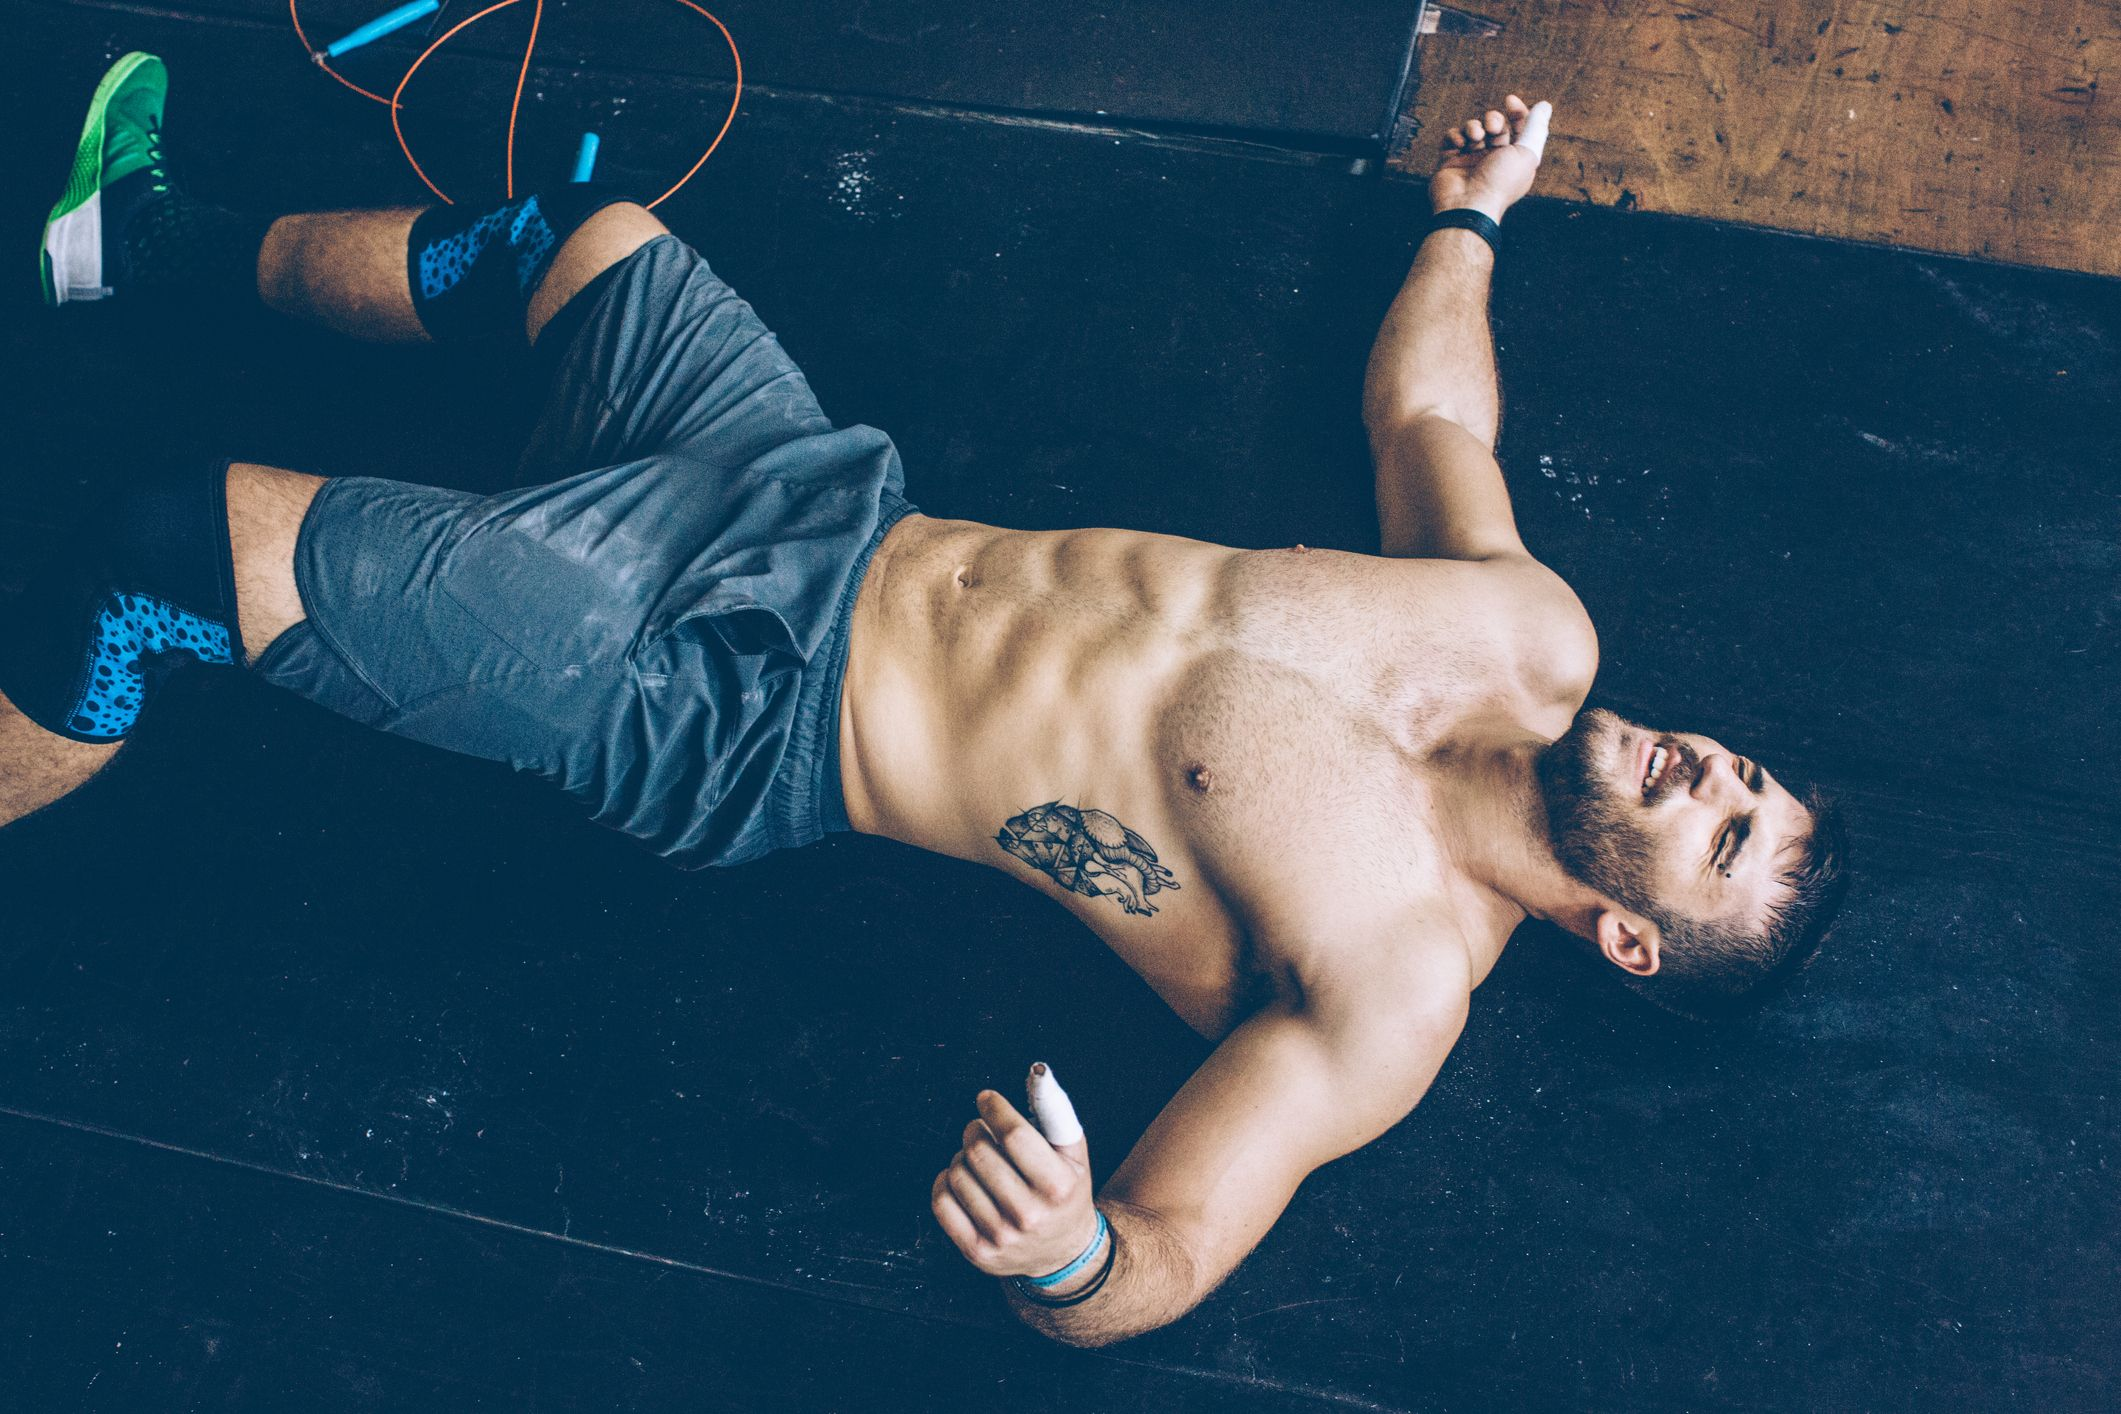 This 2-Move Home Workout Hits Your Arms And Shoulders In 20 Minutes